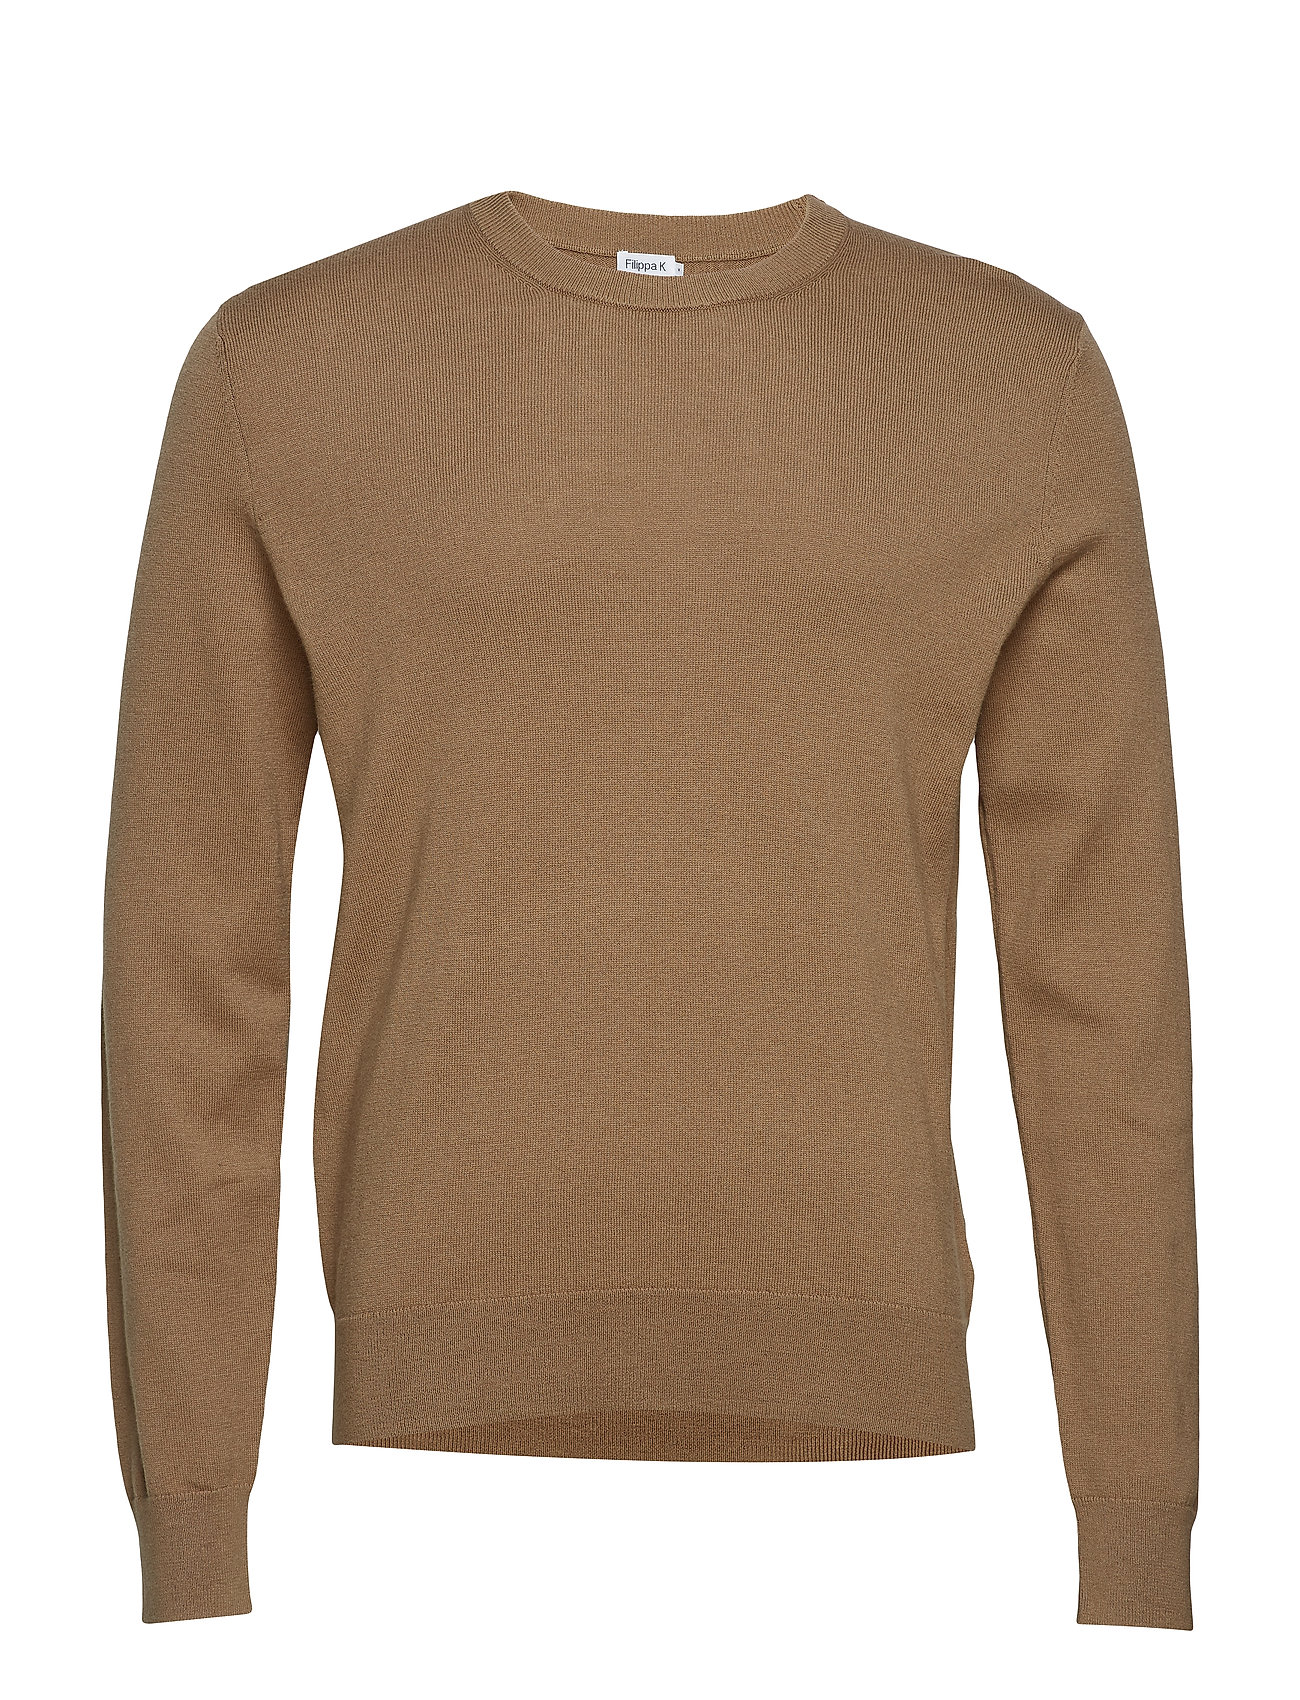 Filippa K M. Cotton Merino Basic Sweater - TOBACCO